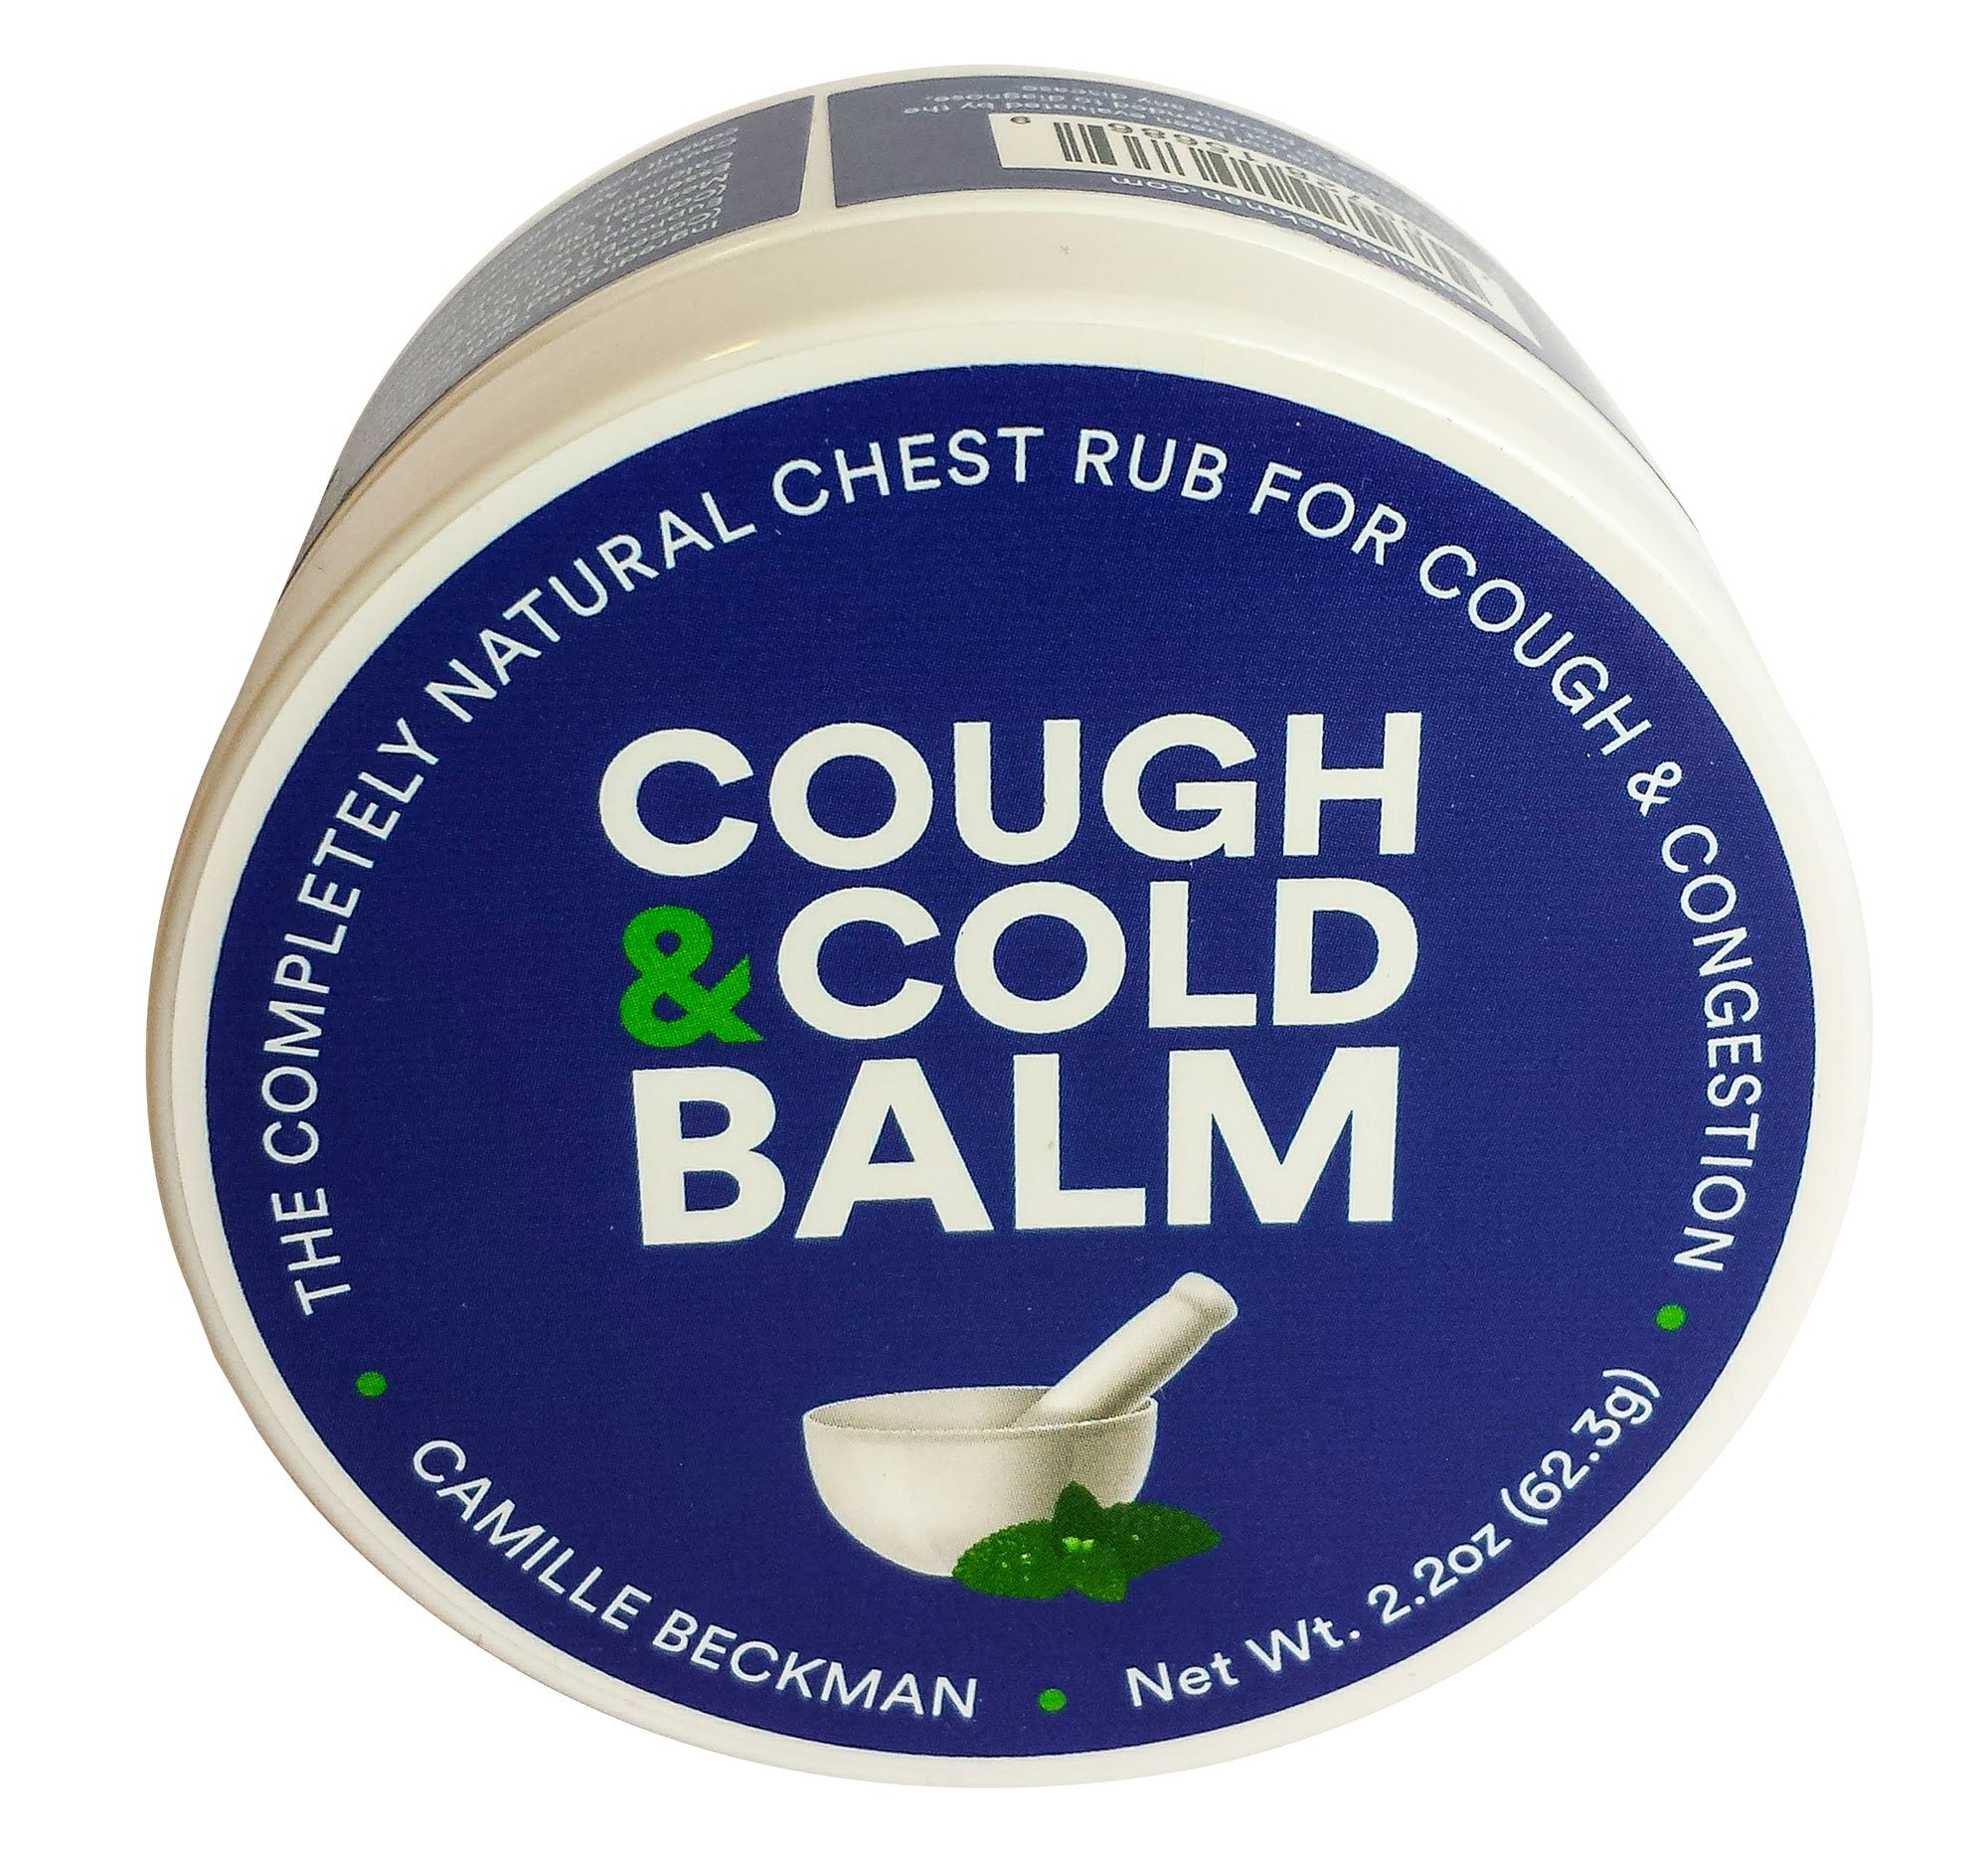 Camille Beckman Cough & Cold Balm All-in-One Natural Vegan Formula, 2.2 Ounce